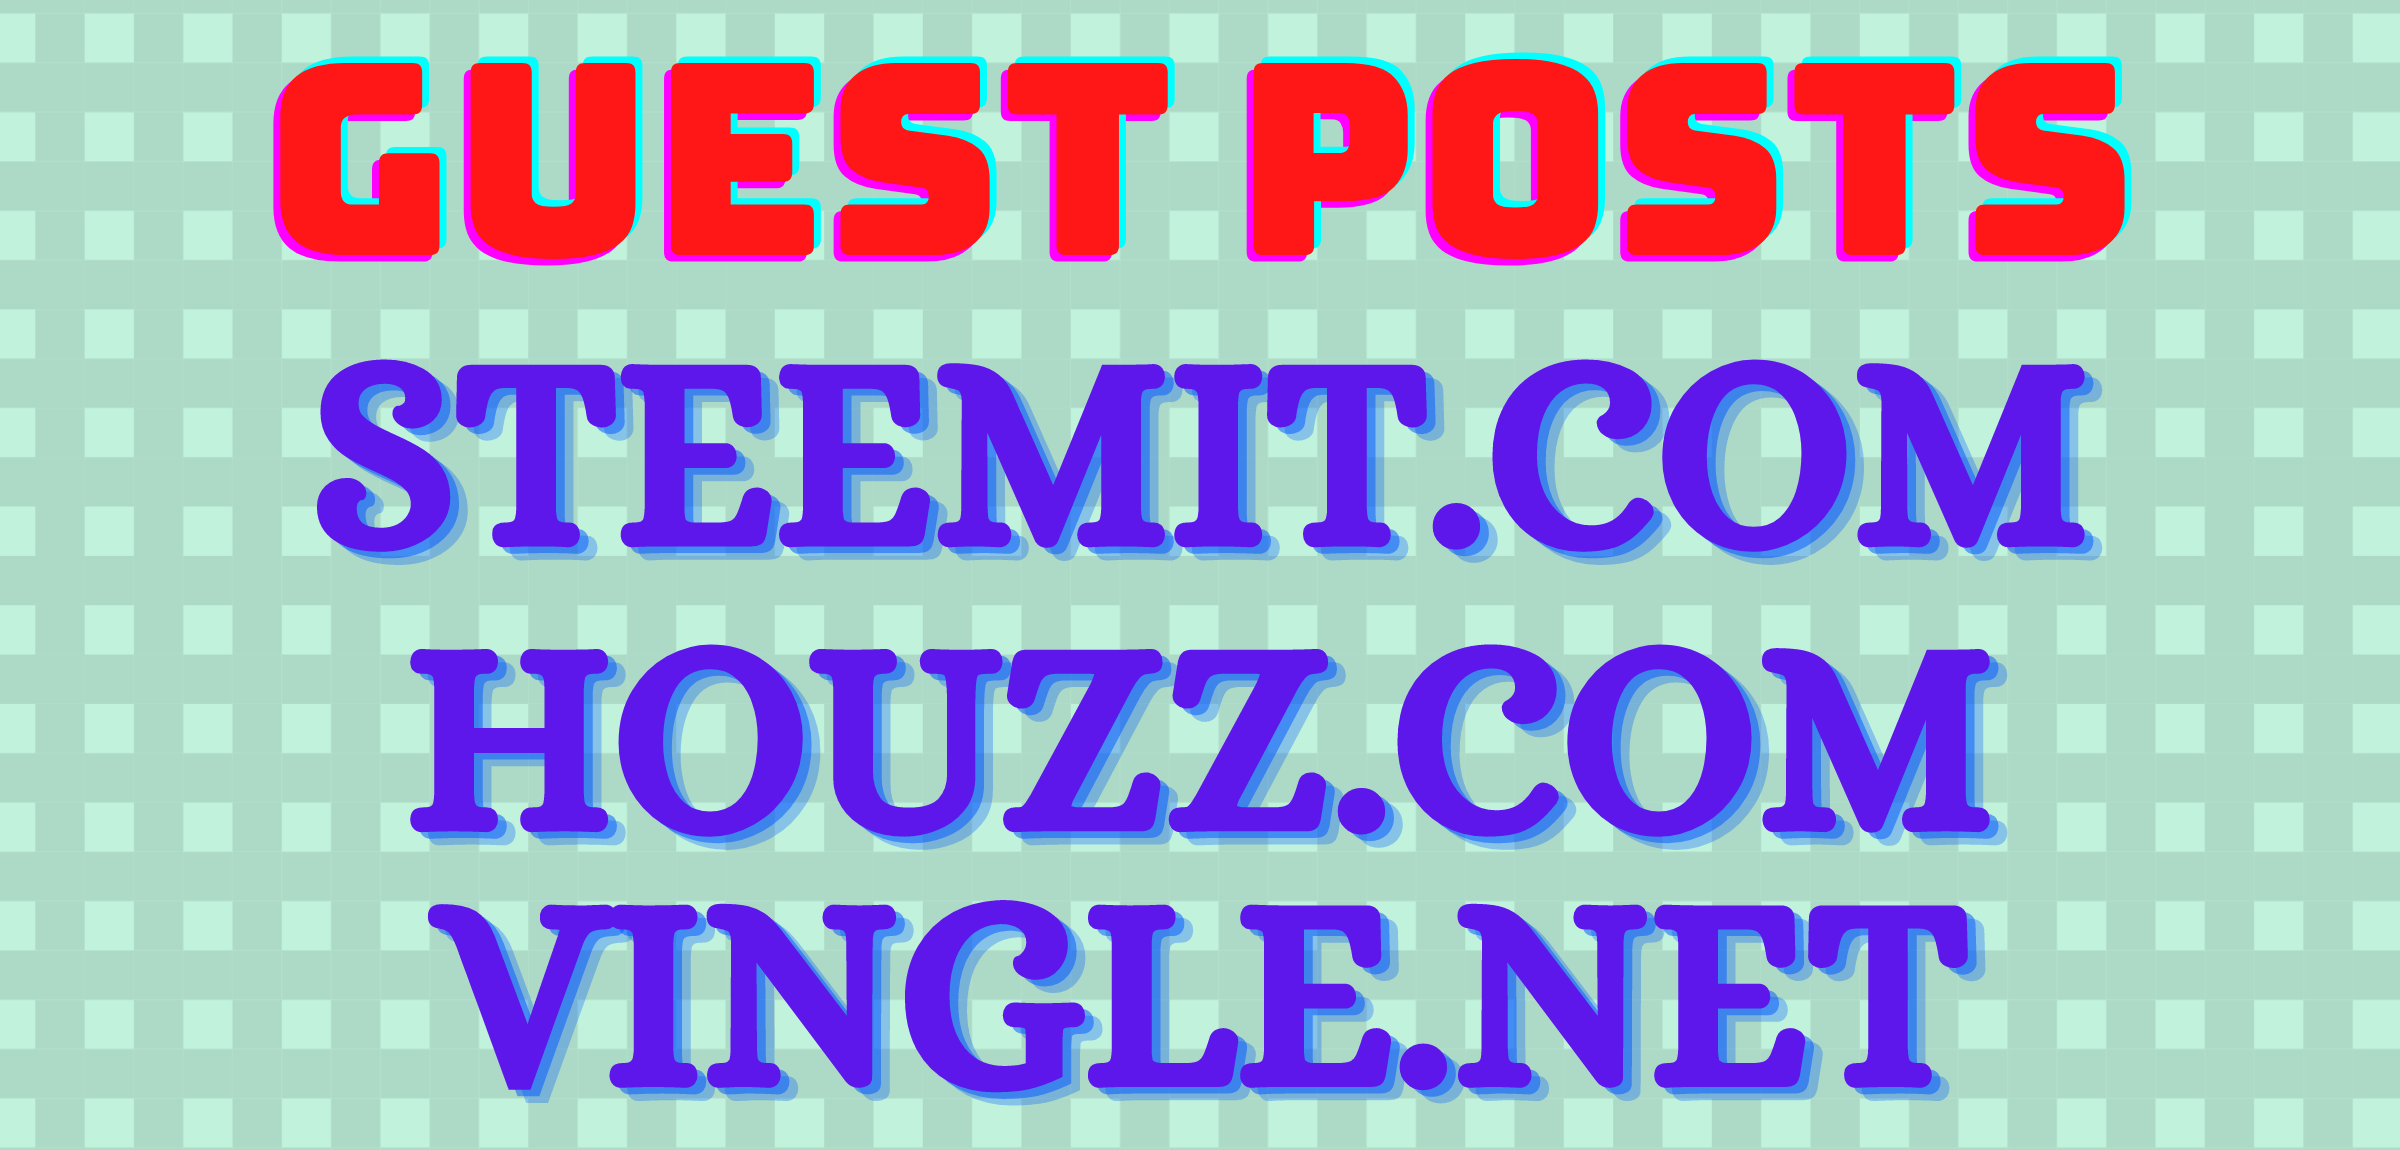 guest posts on steemit,  houzz,  vingle high authority site